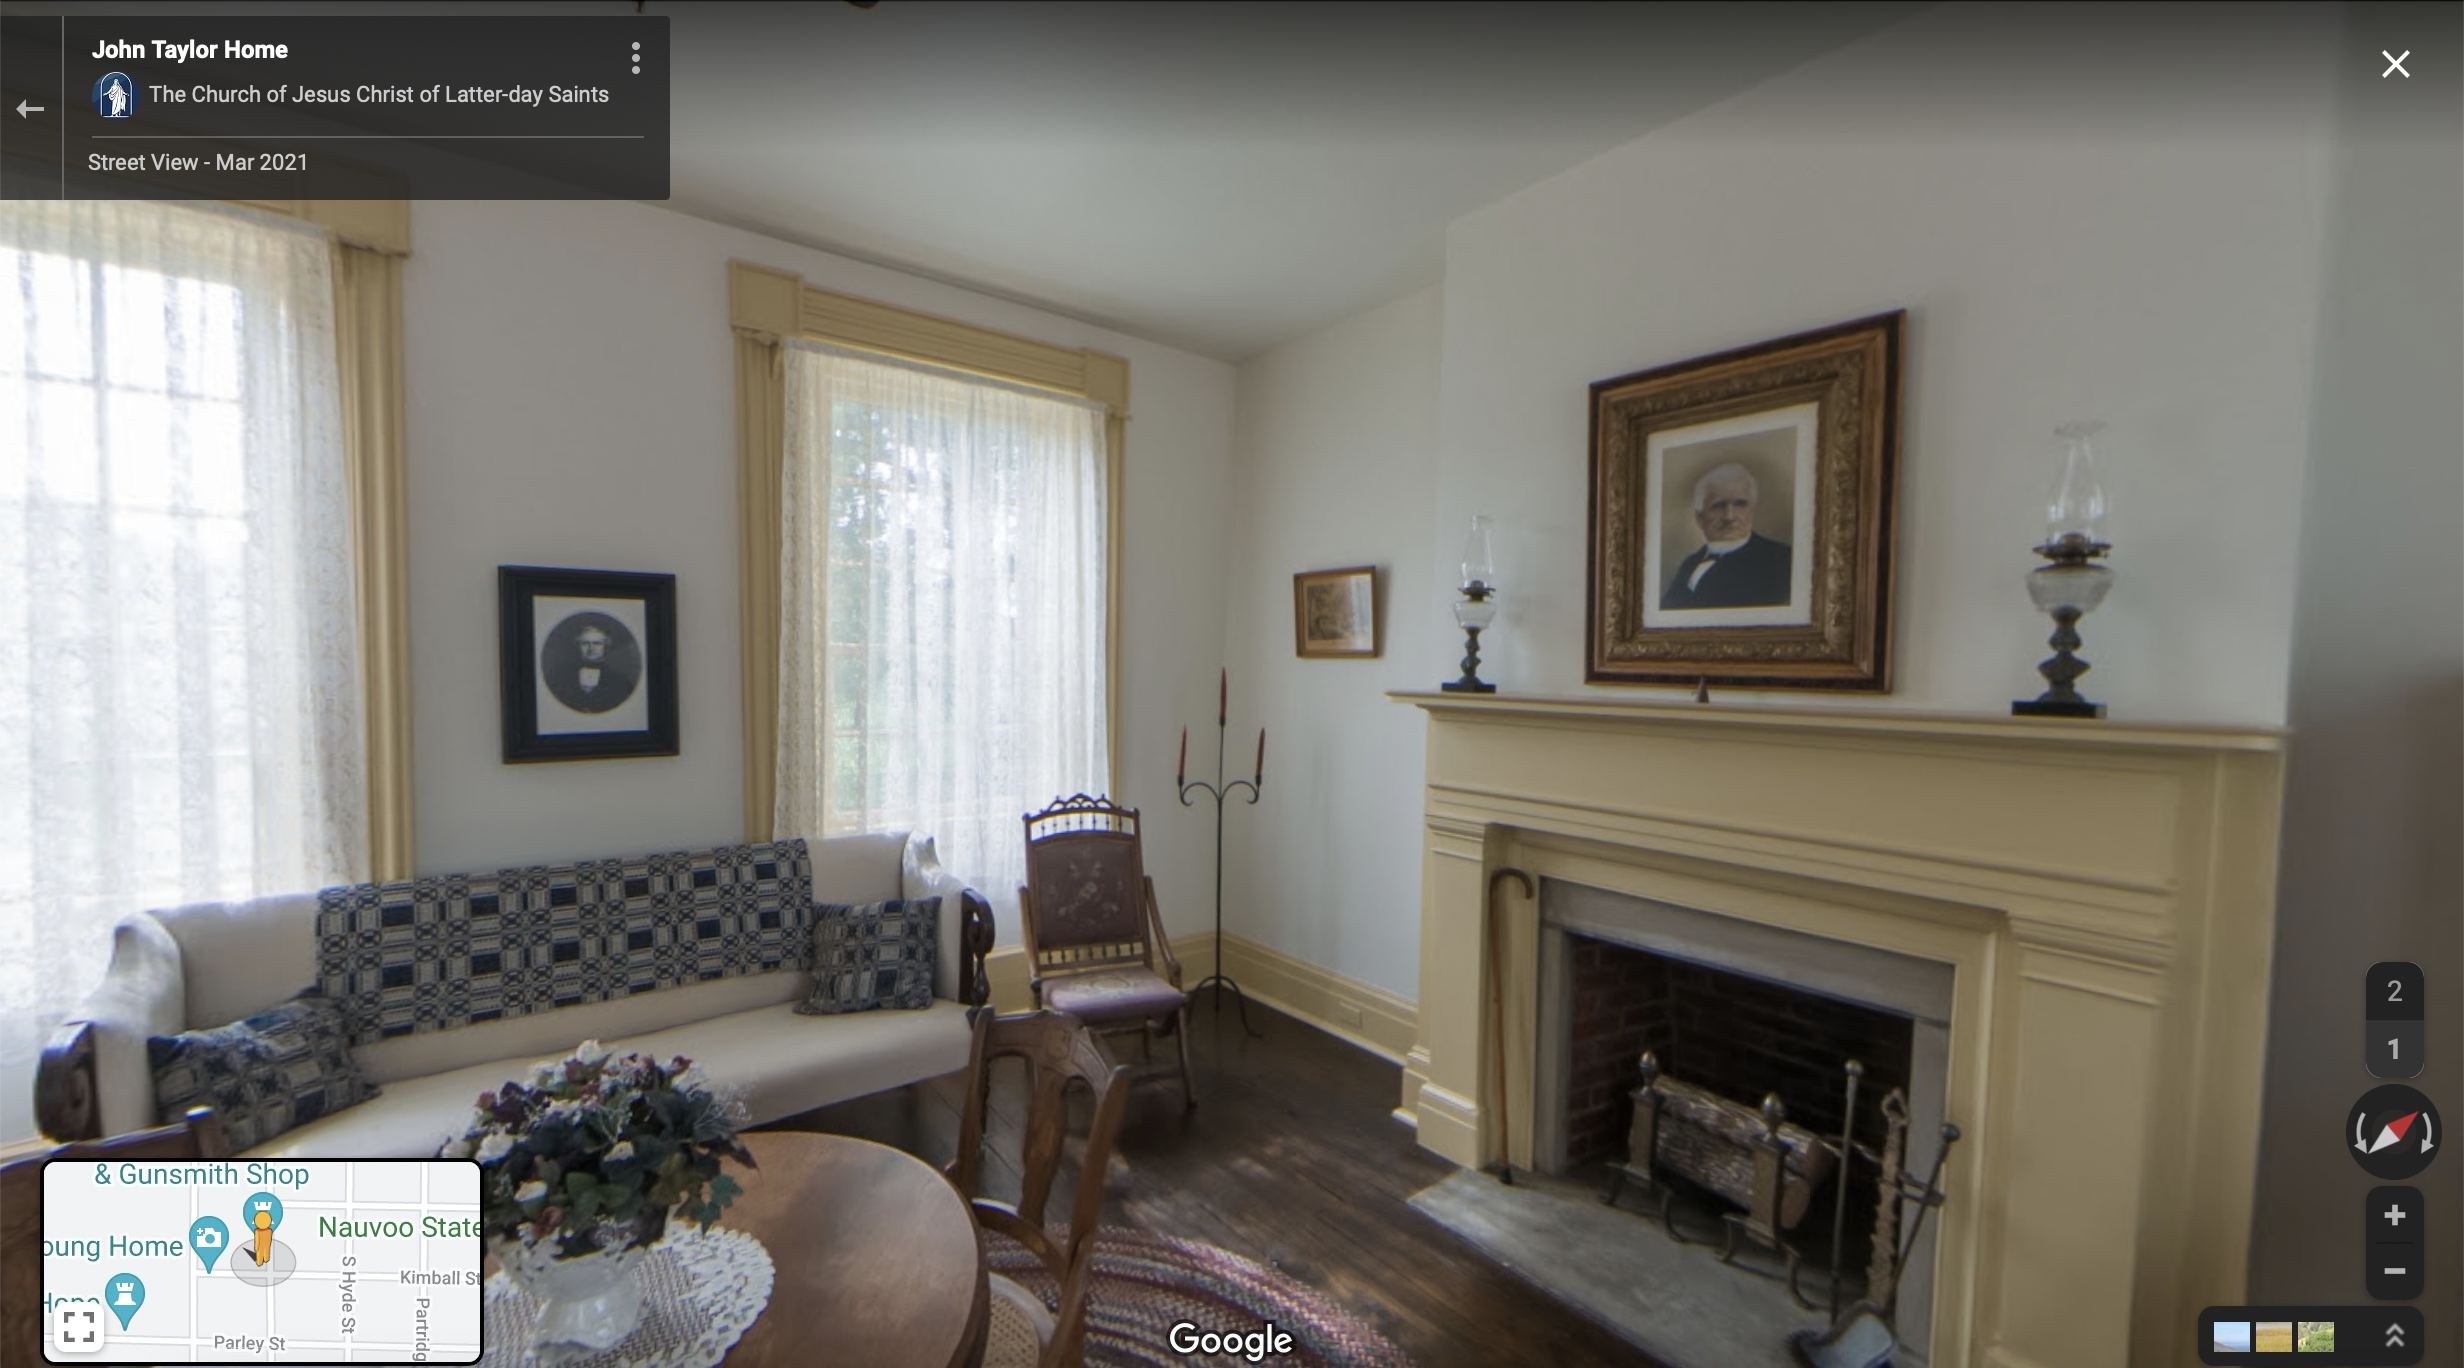 Screenshot of the Google Maps 360 view of the John Taylor home in Nauvoo